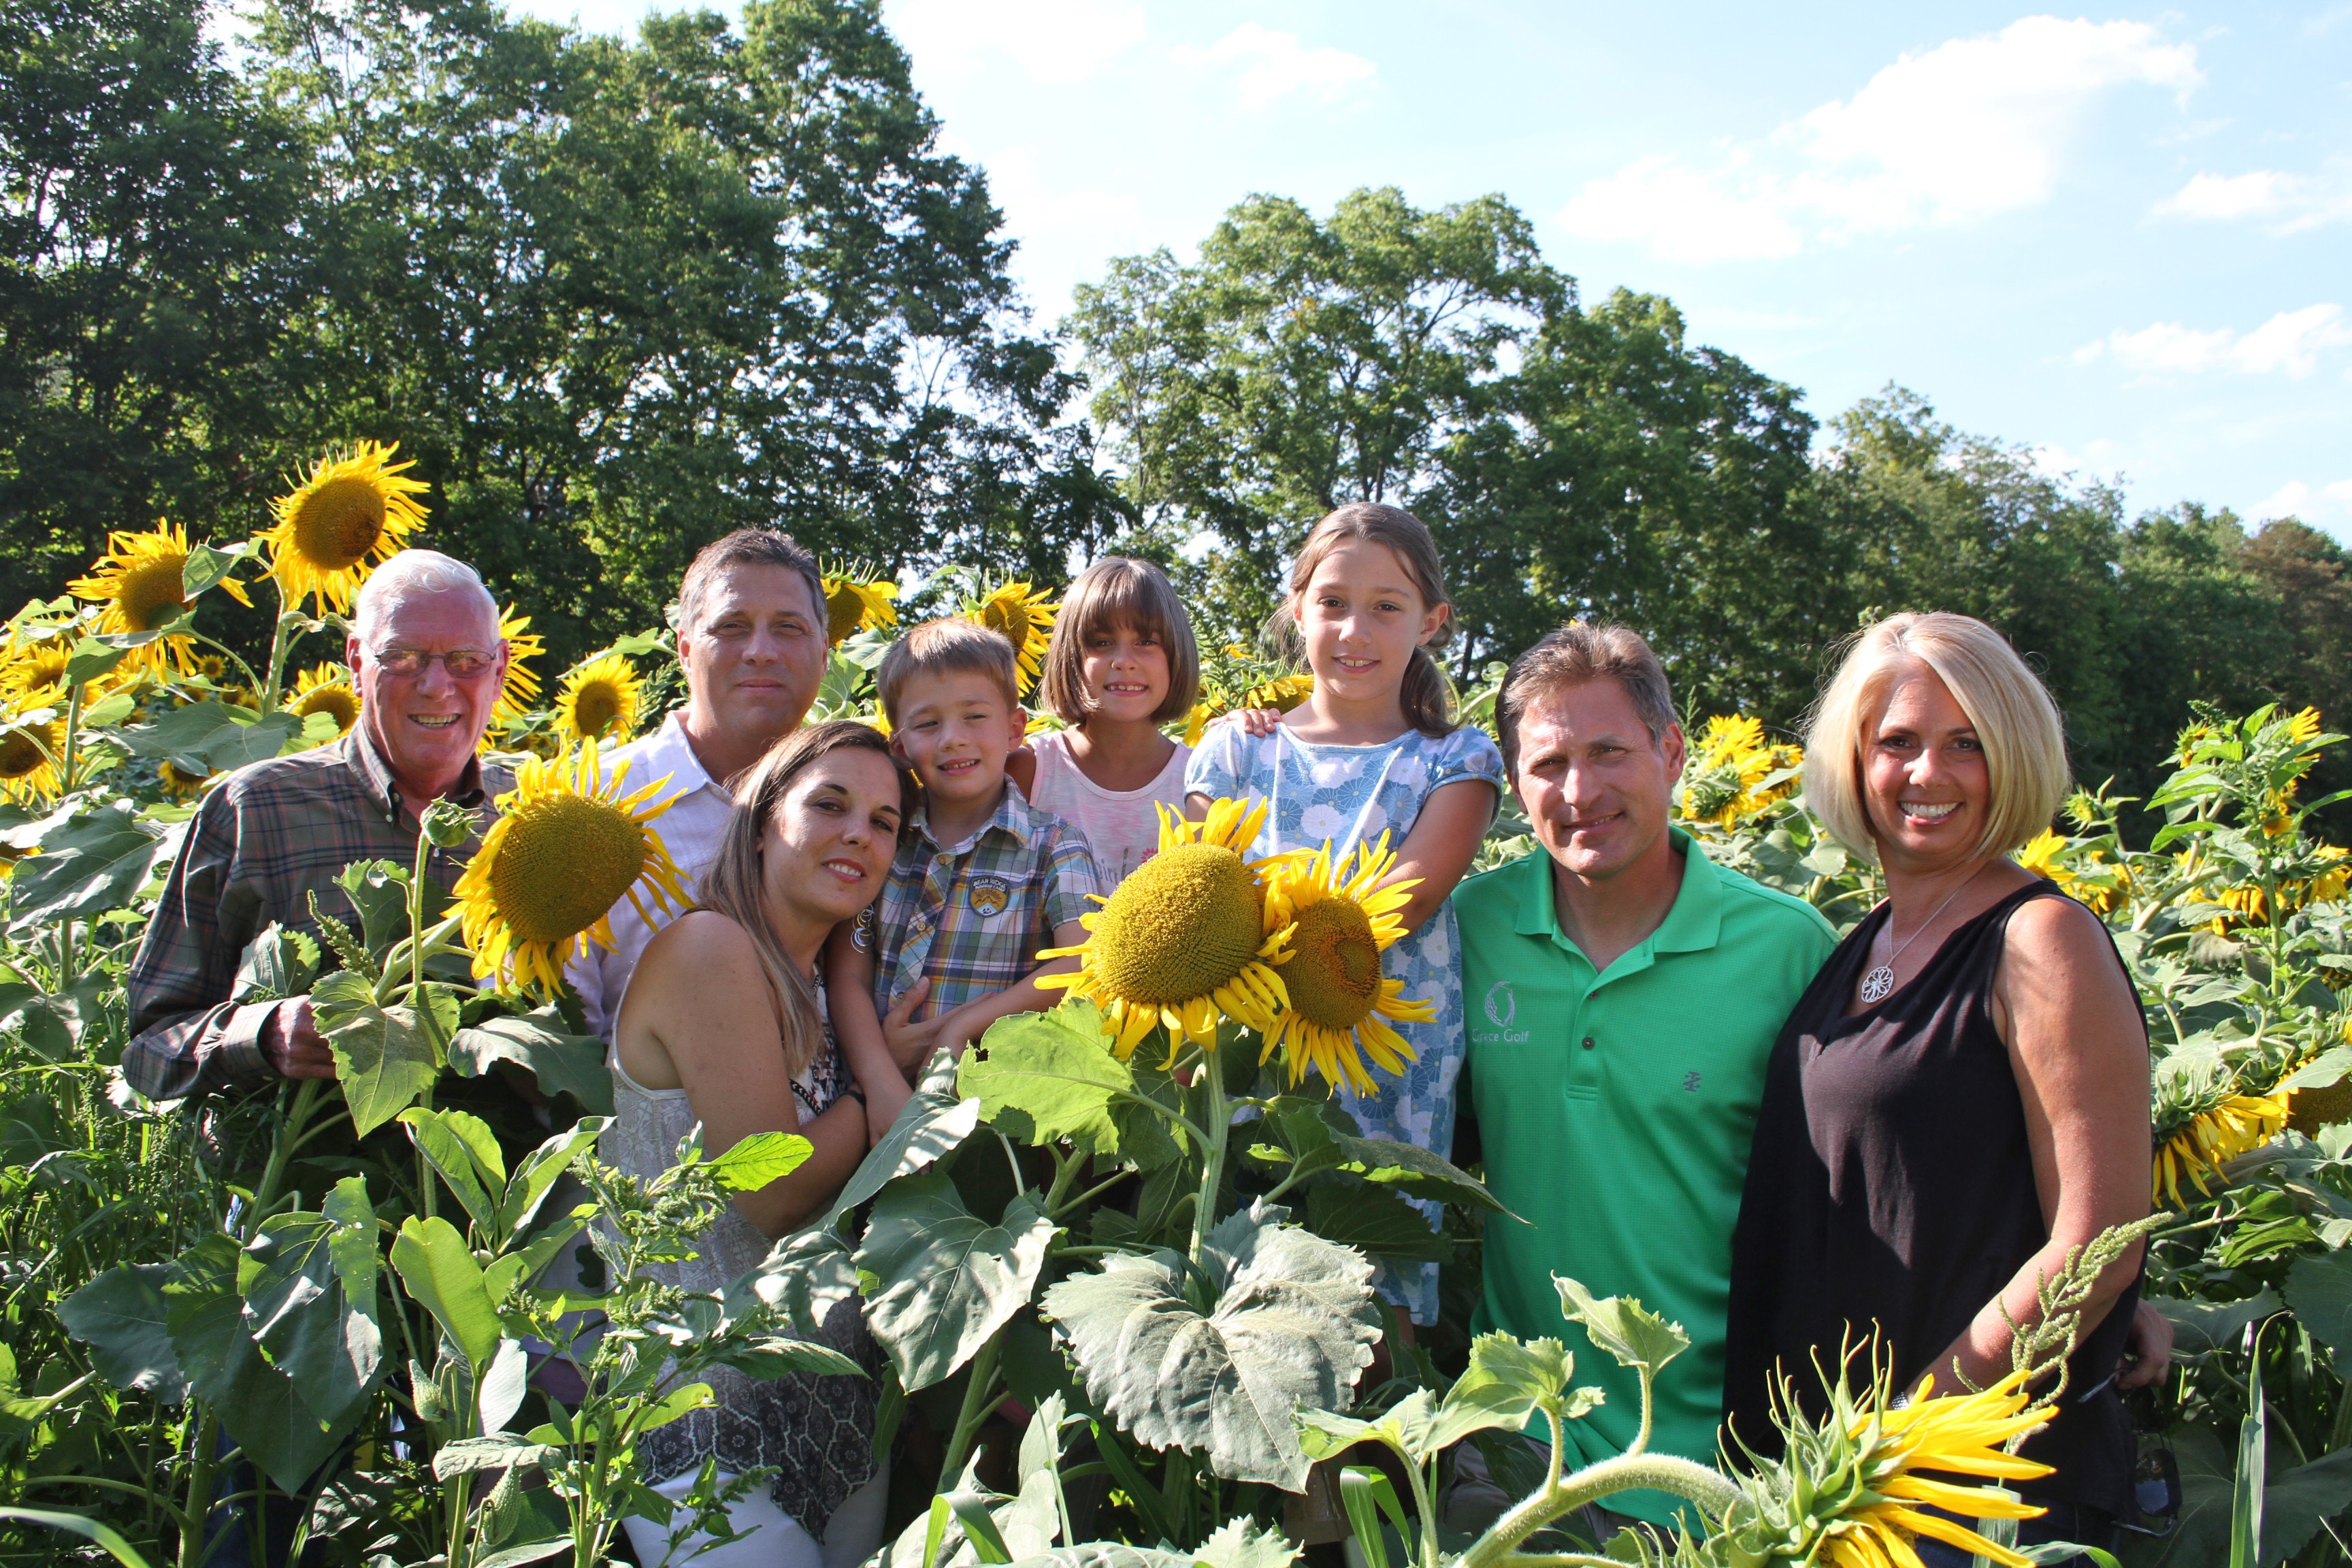 A Family's Quest for a Healthier Oil Leads to Sunflowers